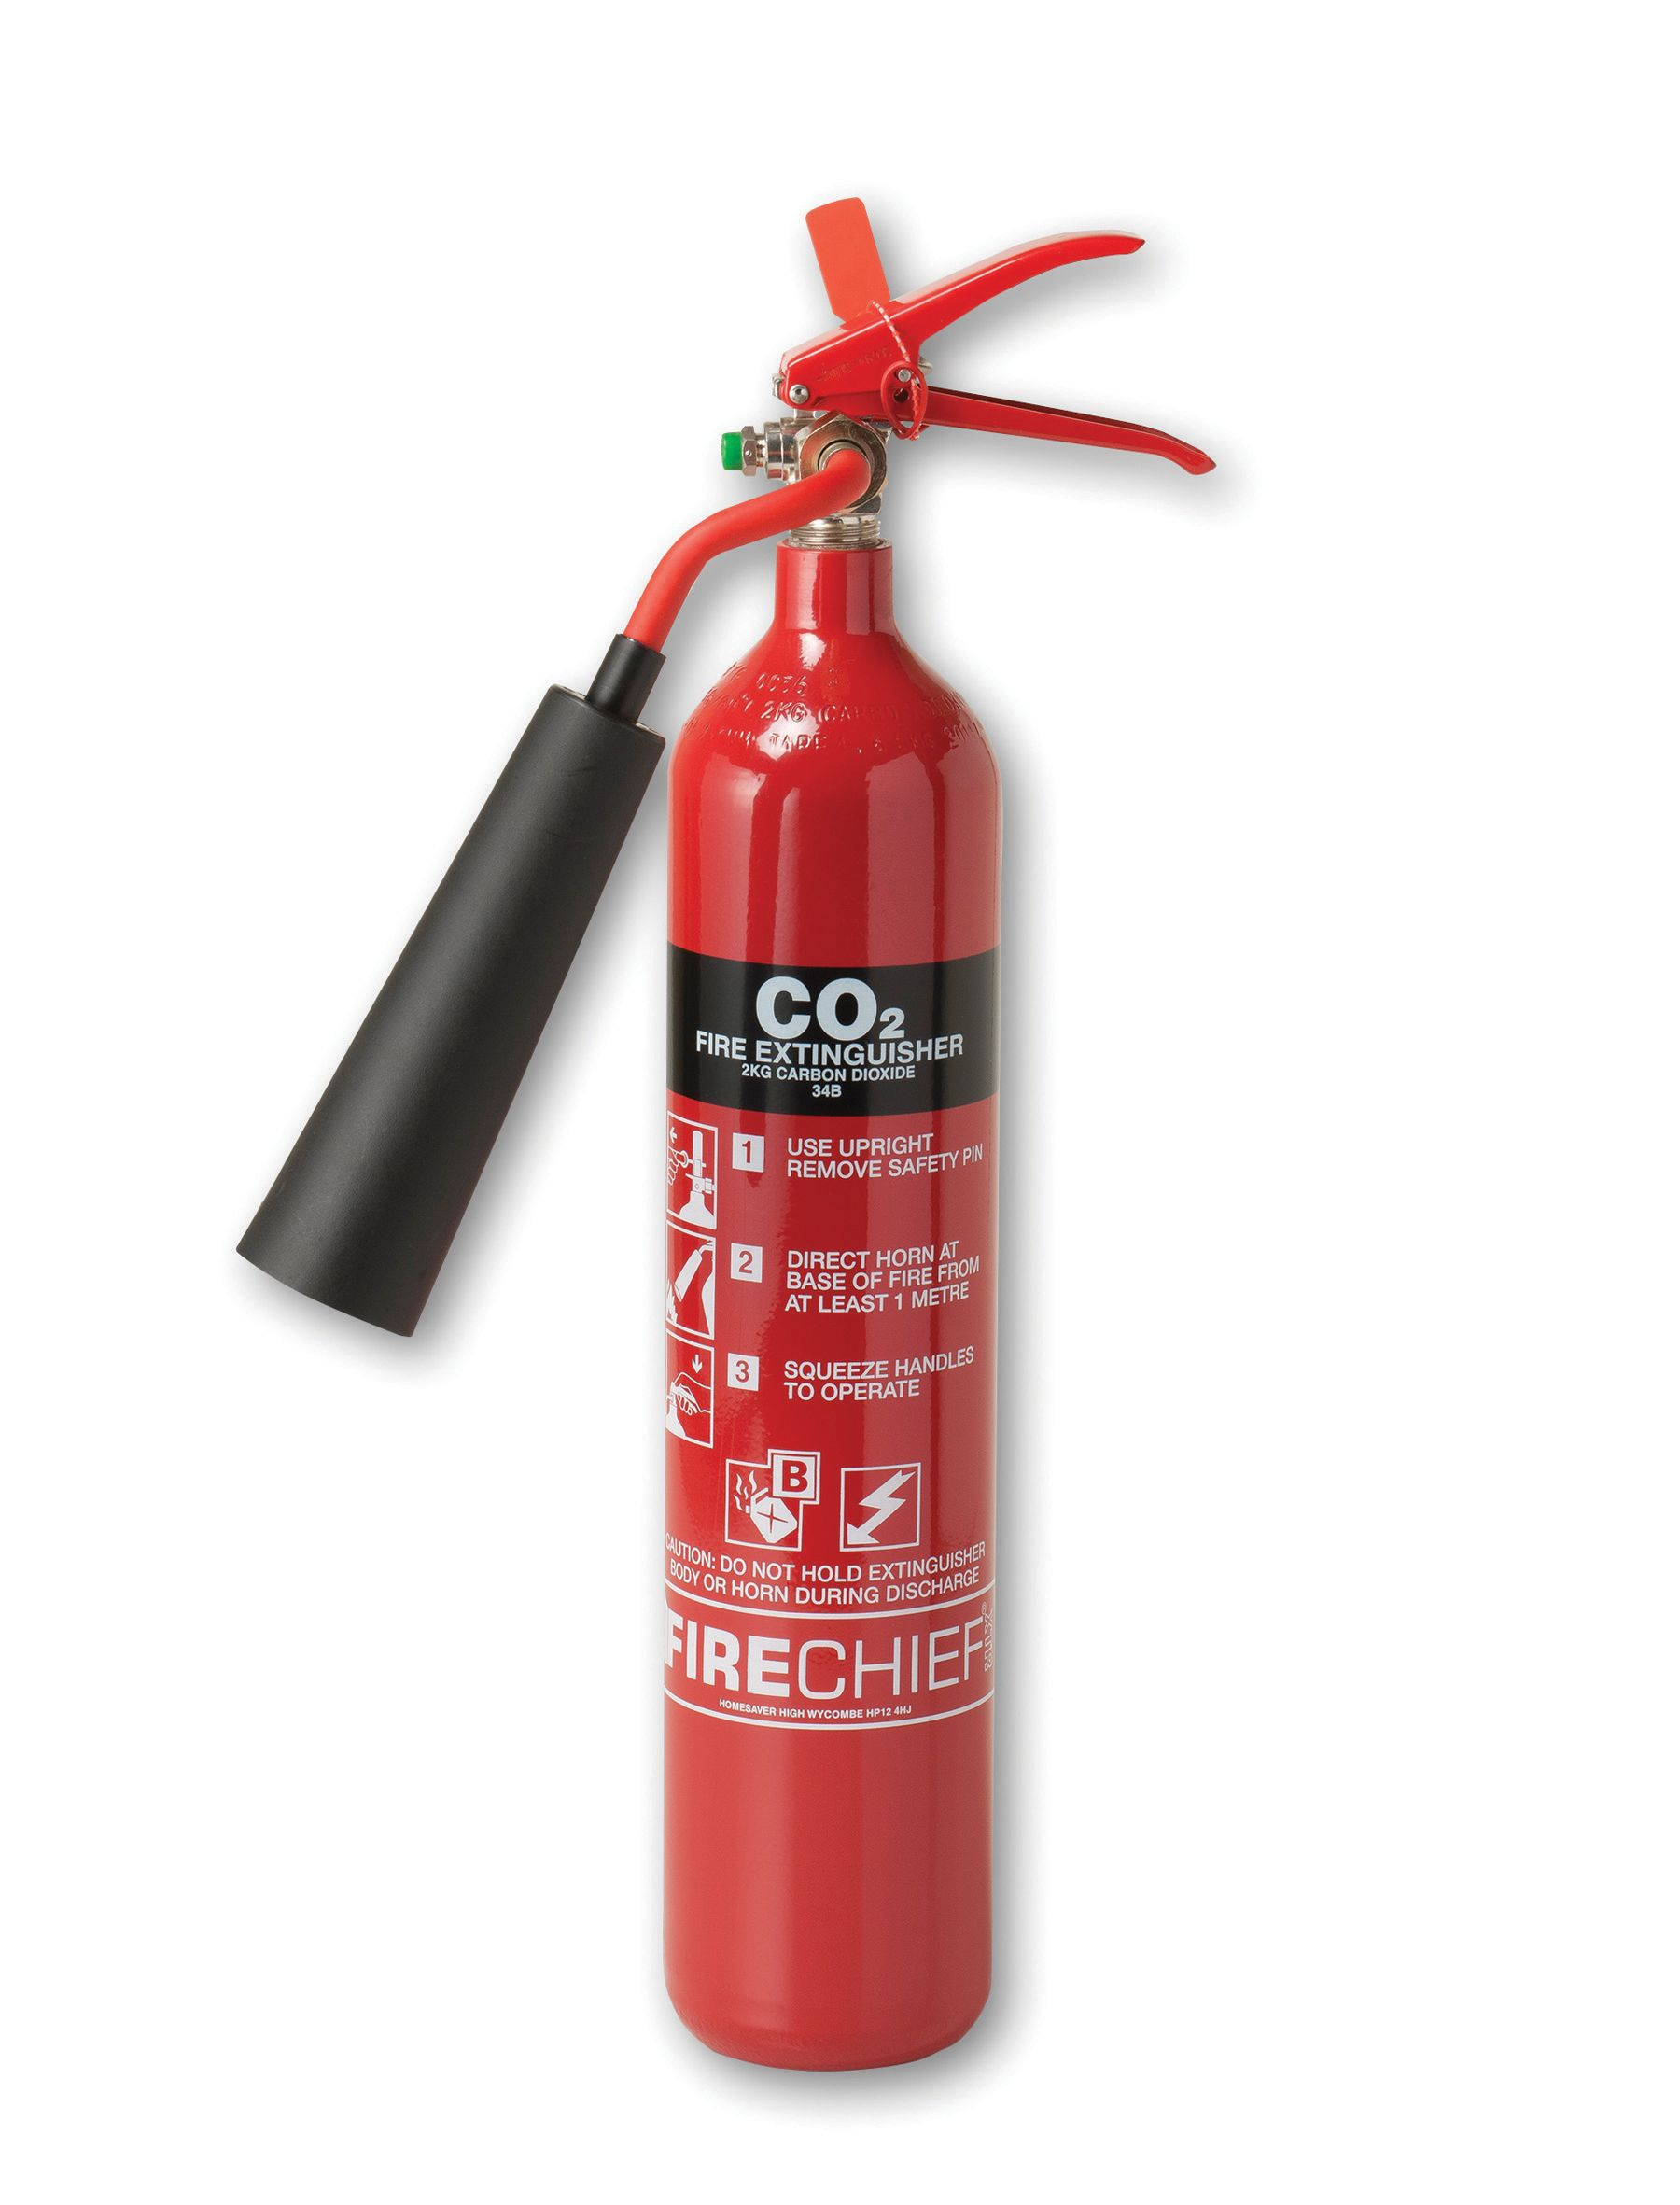 Firechief Carbon Dioxide Fire Extinguisher 6.8kg